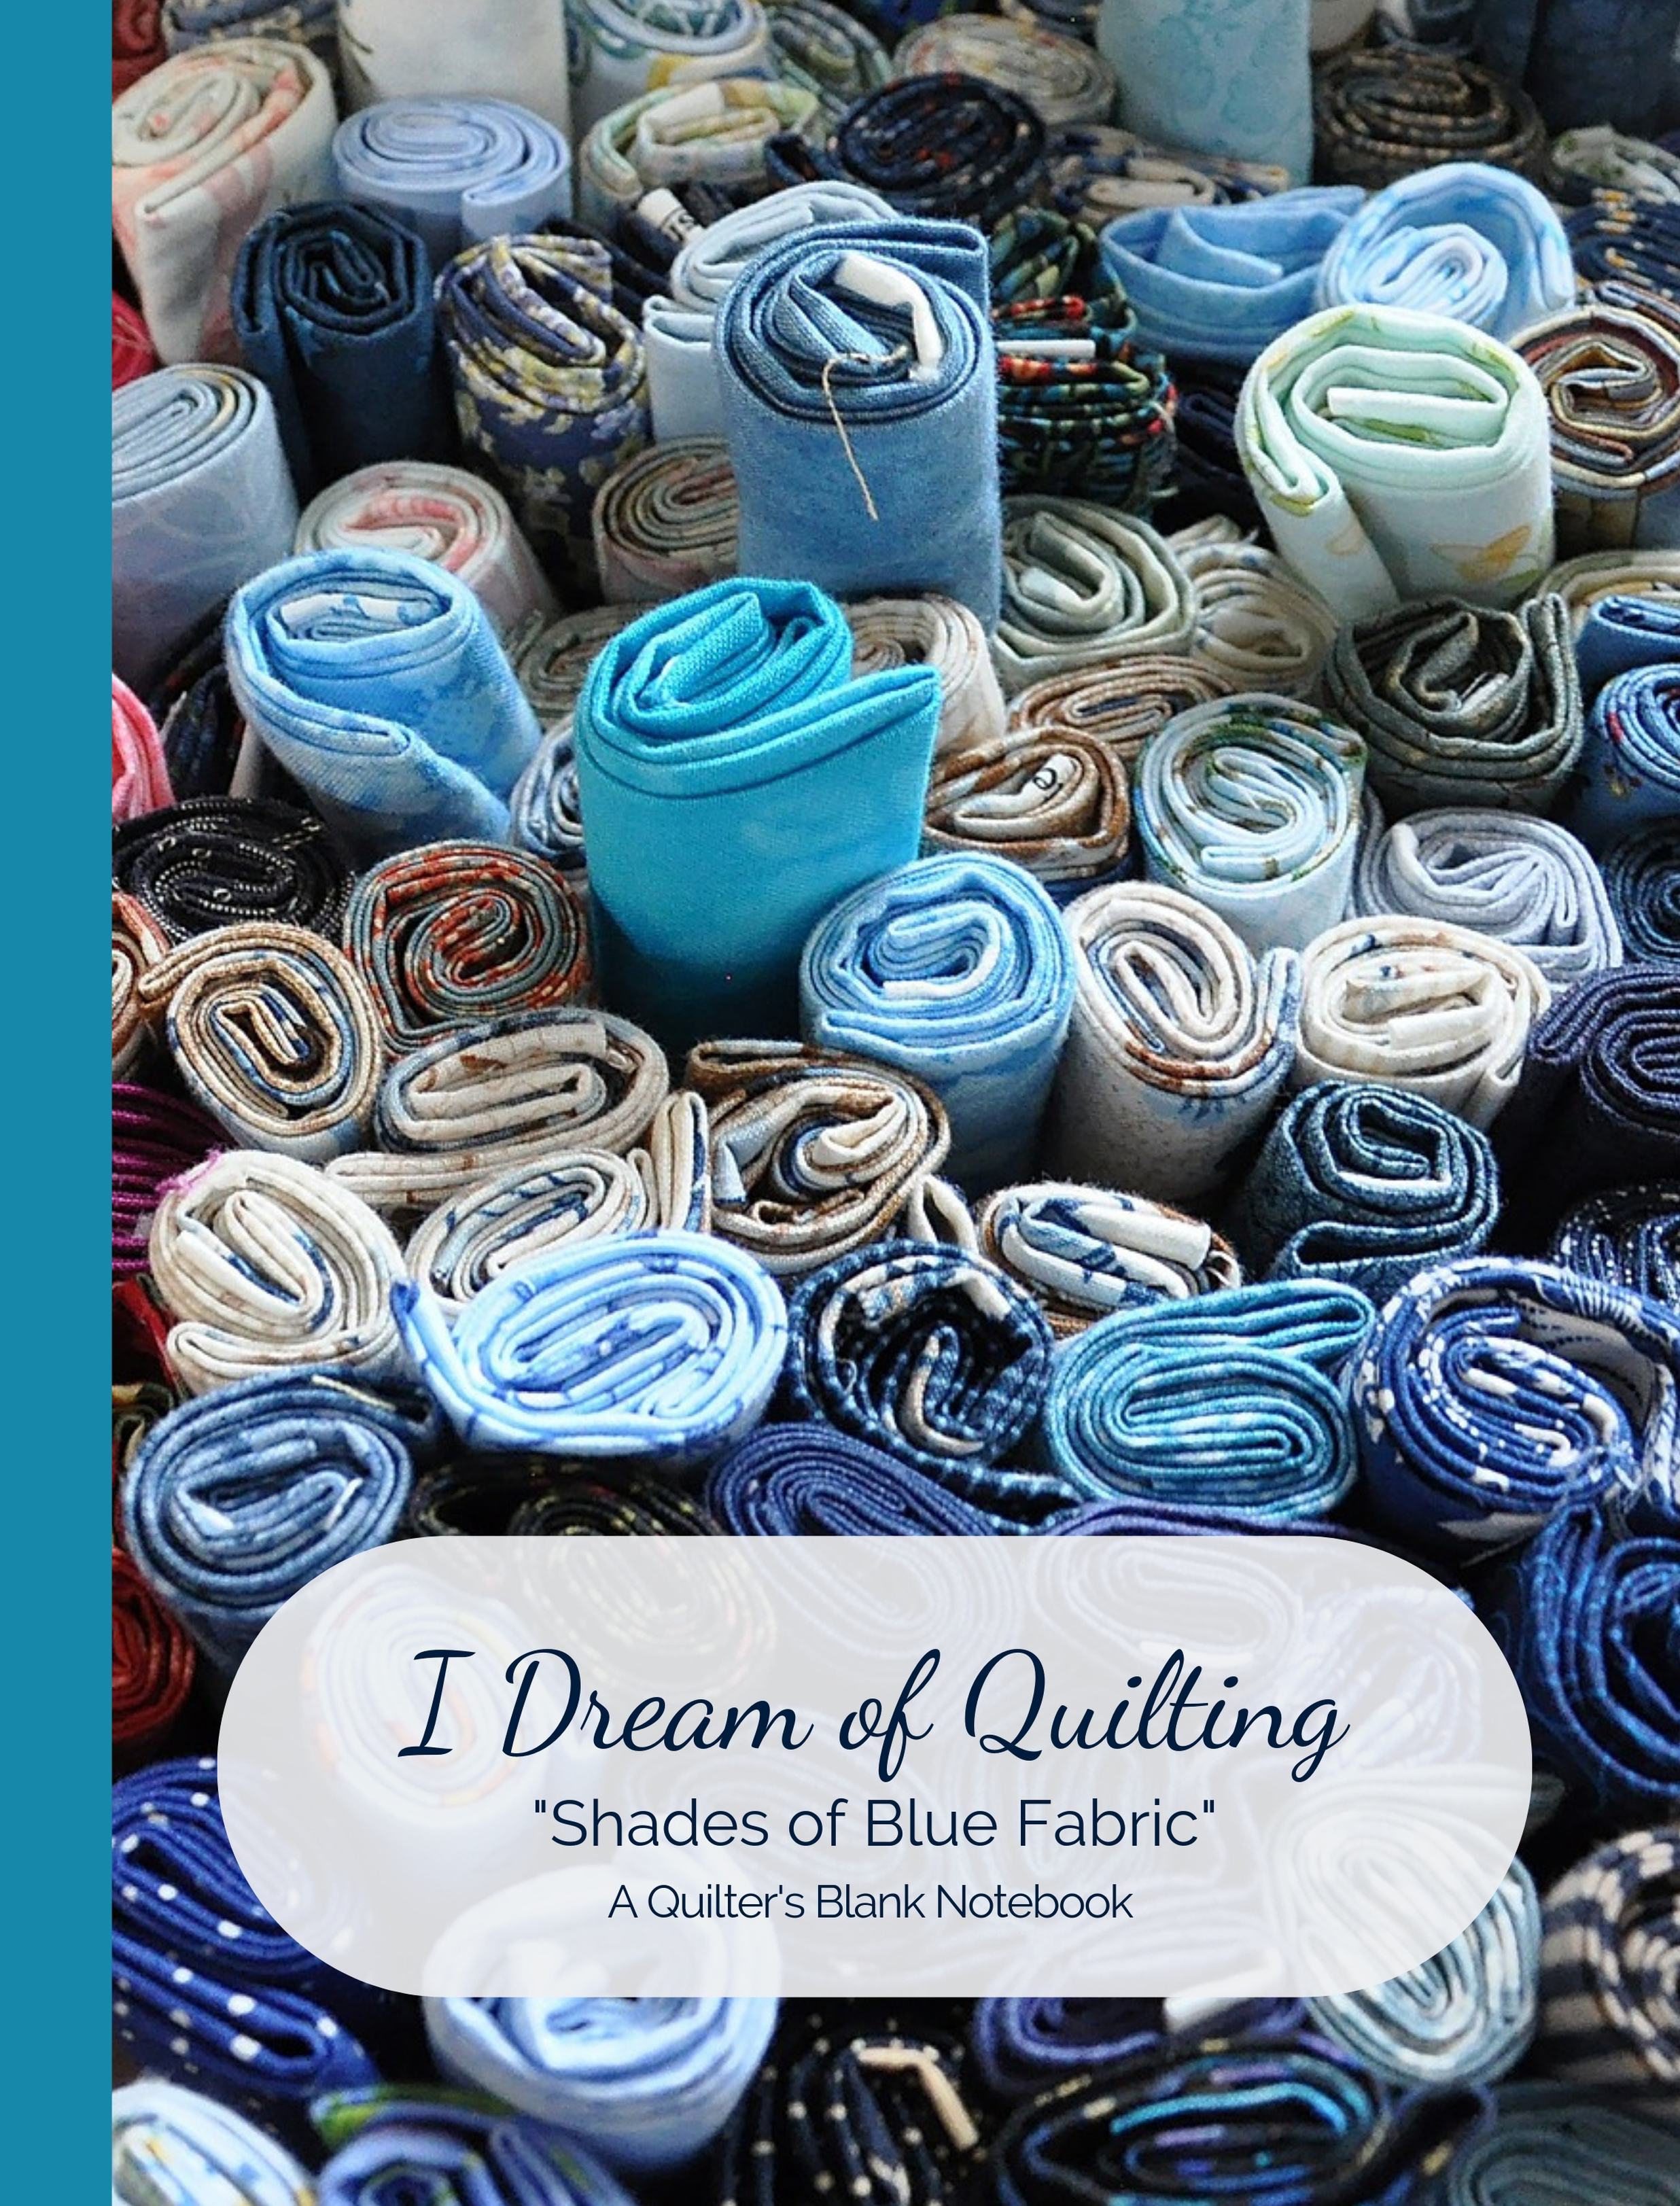 """I Dream of Quilting """"Shades of Blue Fabric"""" Notebook"""